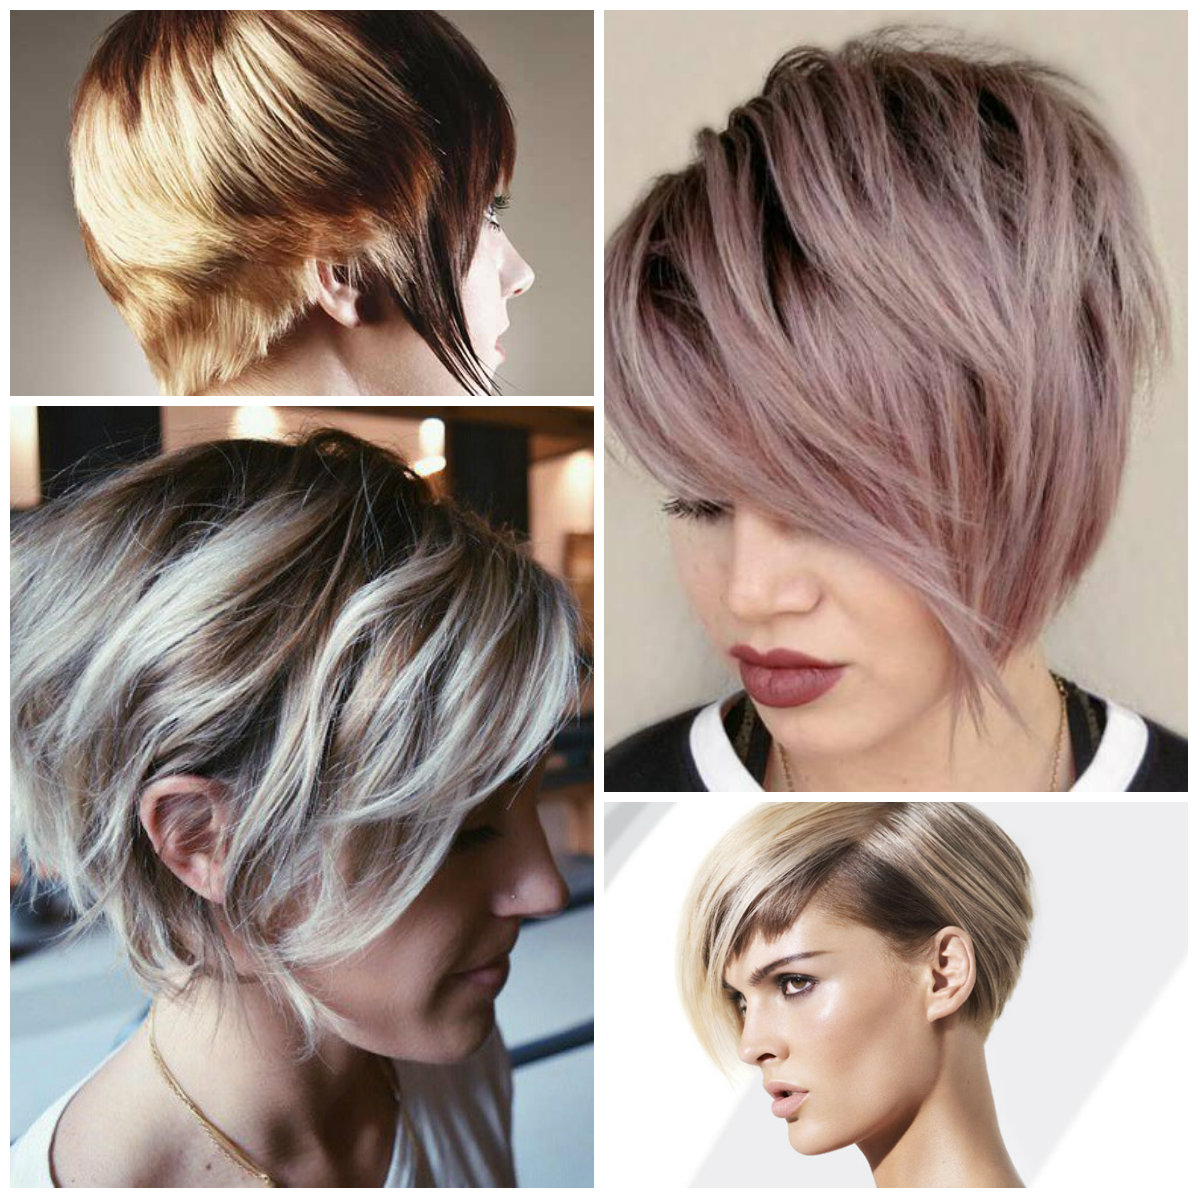 "Wedge haircuts and hairstyles for 2019 ""width ="" 500 ""height ="" 500 ""data-jpibfi-post-excerpt ="" ""data-jpibfi-post-url ="" http://www.frisuren-2018.com/keilhaarschnitte-and -frisuren-fuer-2019 / ""data-jpibfi-post-title ="" Wedge Haircuts and Hairstyles for 2019 ""data-jpibfi-src ="" http://www.frisuren-2018.com/wp-content/uploads/2019/ 05 / wedge haircuts and hairstyles-for-2019.jpg ""/></strong><strong>Layered wedge haircut </strong></p> <p>It's an extreme haircut that will never bore you. The design requires that the strands have some irregular layers and get a cool paint job. The angular contrast between the lengths is more than visible. However, this wedge haircut also has some original highlights that make the overall look a top-notch. Use your hair straightener to complete the look.<span id="